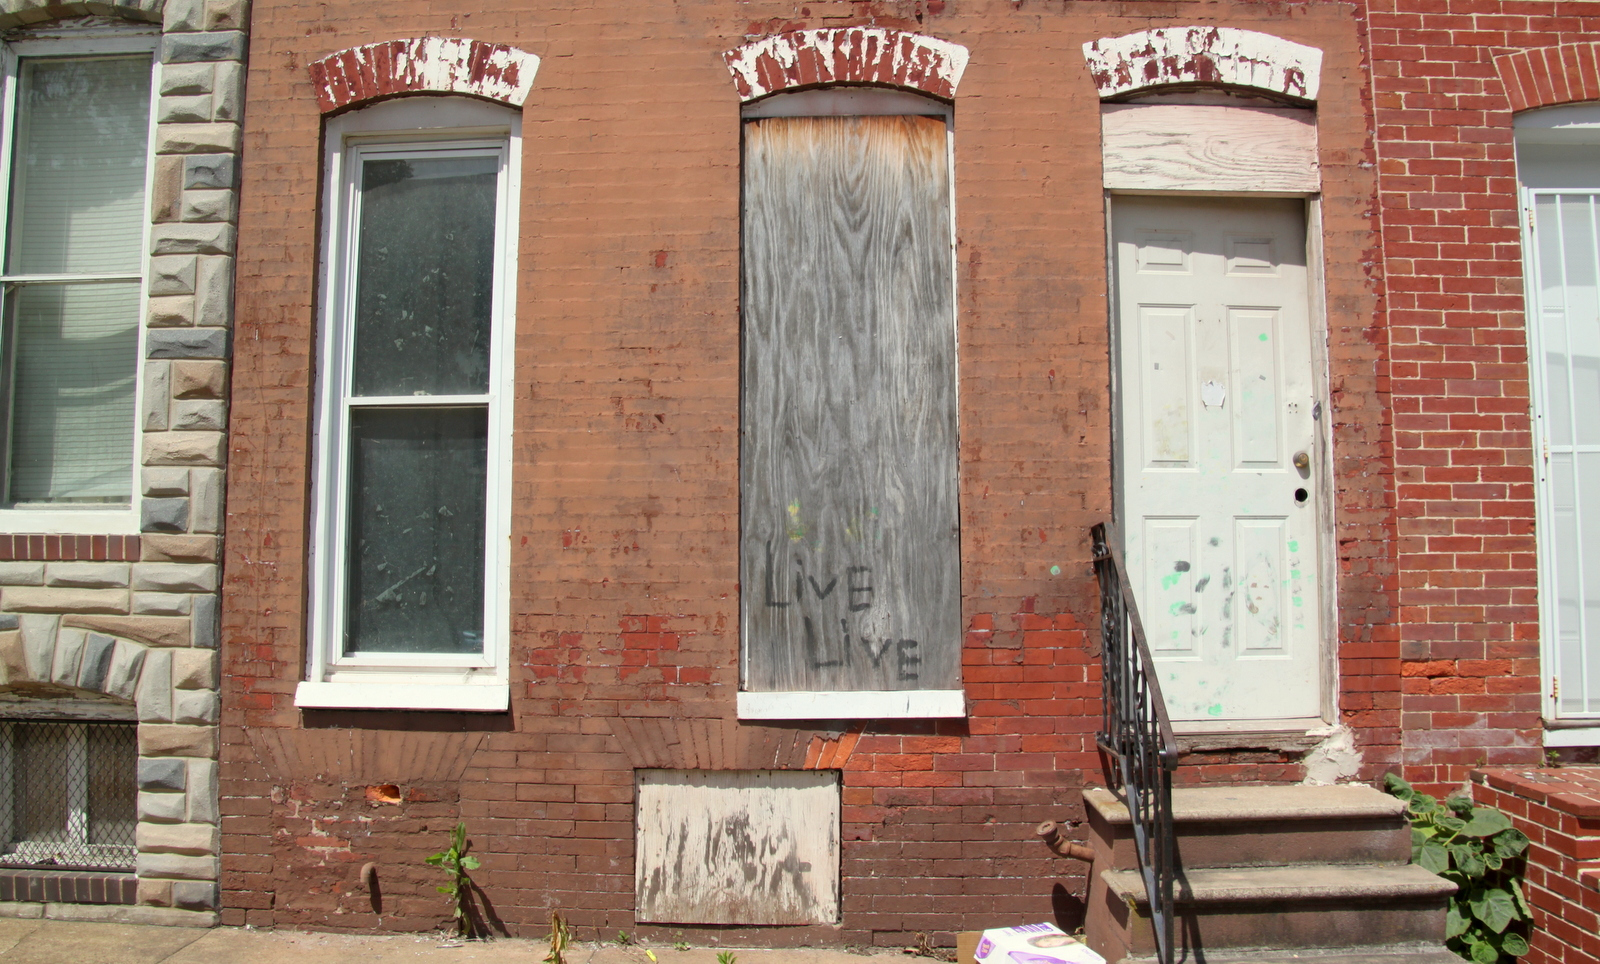 The 300-block of North Stricker Street in Southwest Baltimore. (Fern Shen)